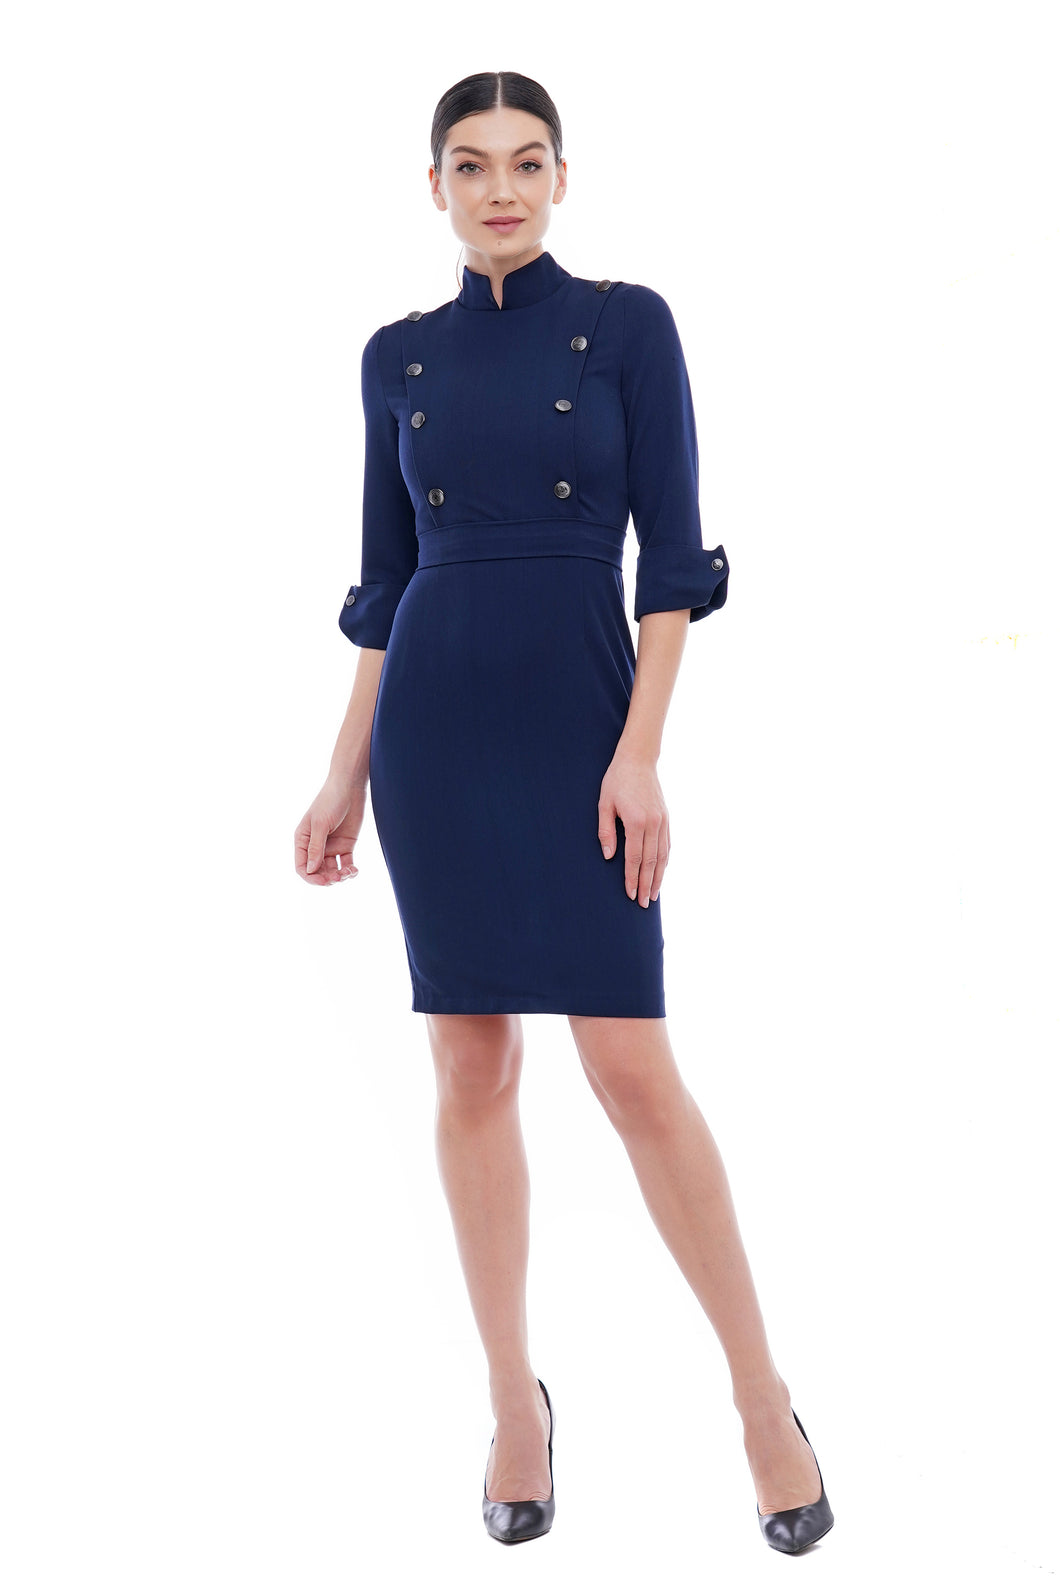 High neck button front dress for women